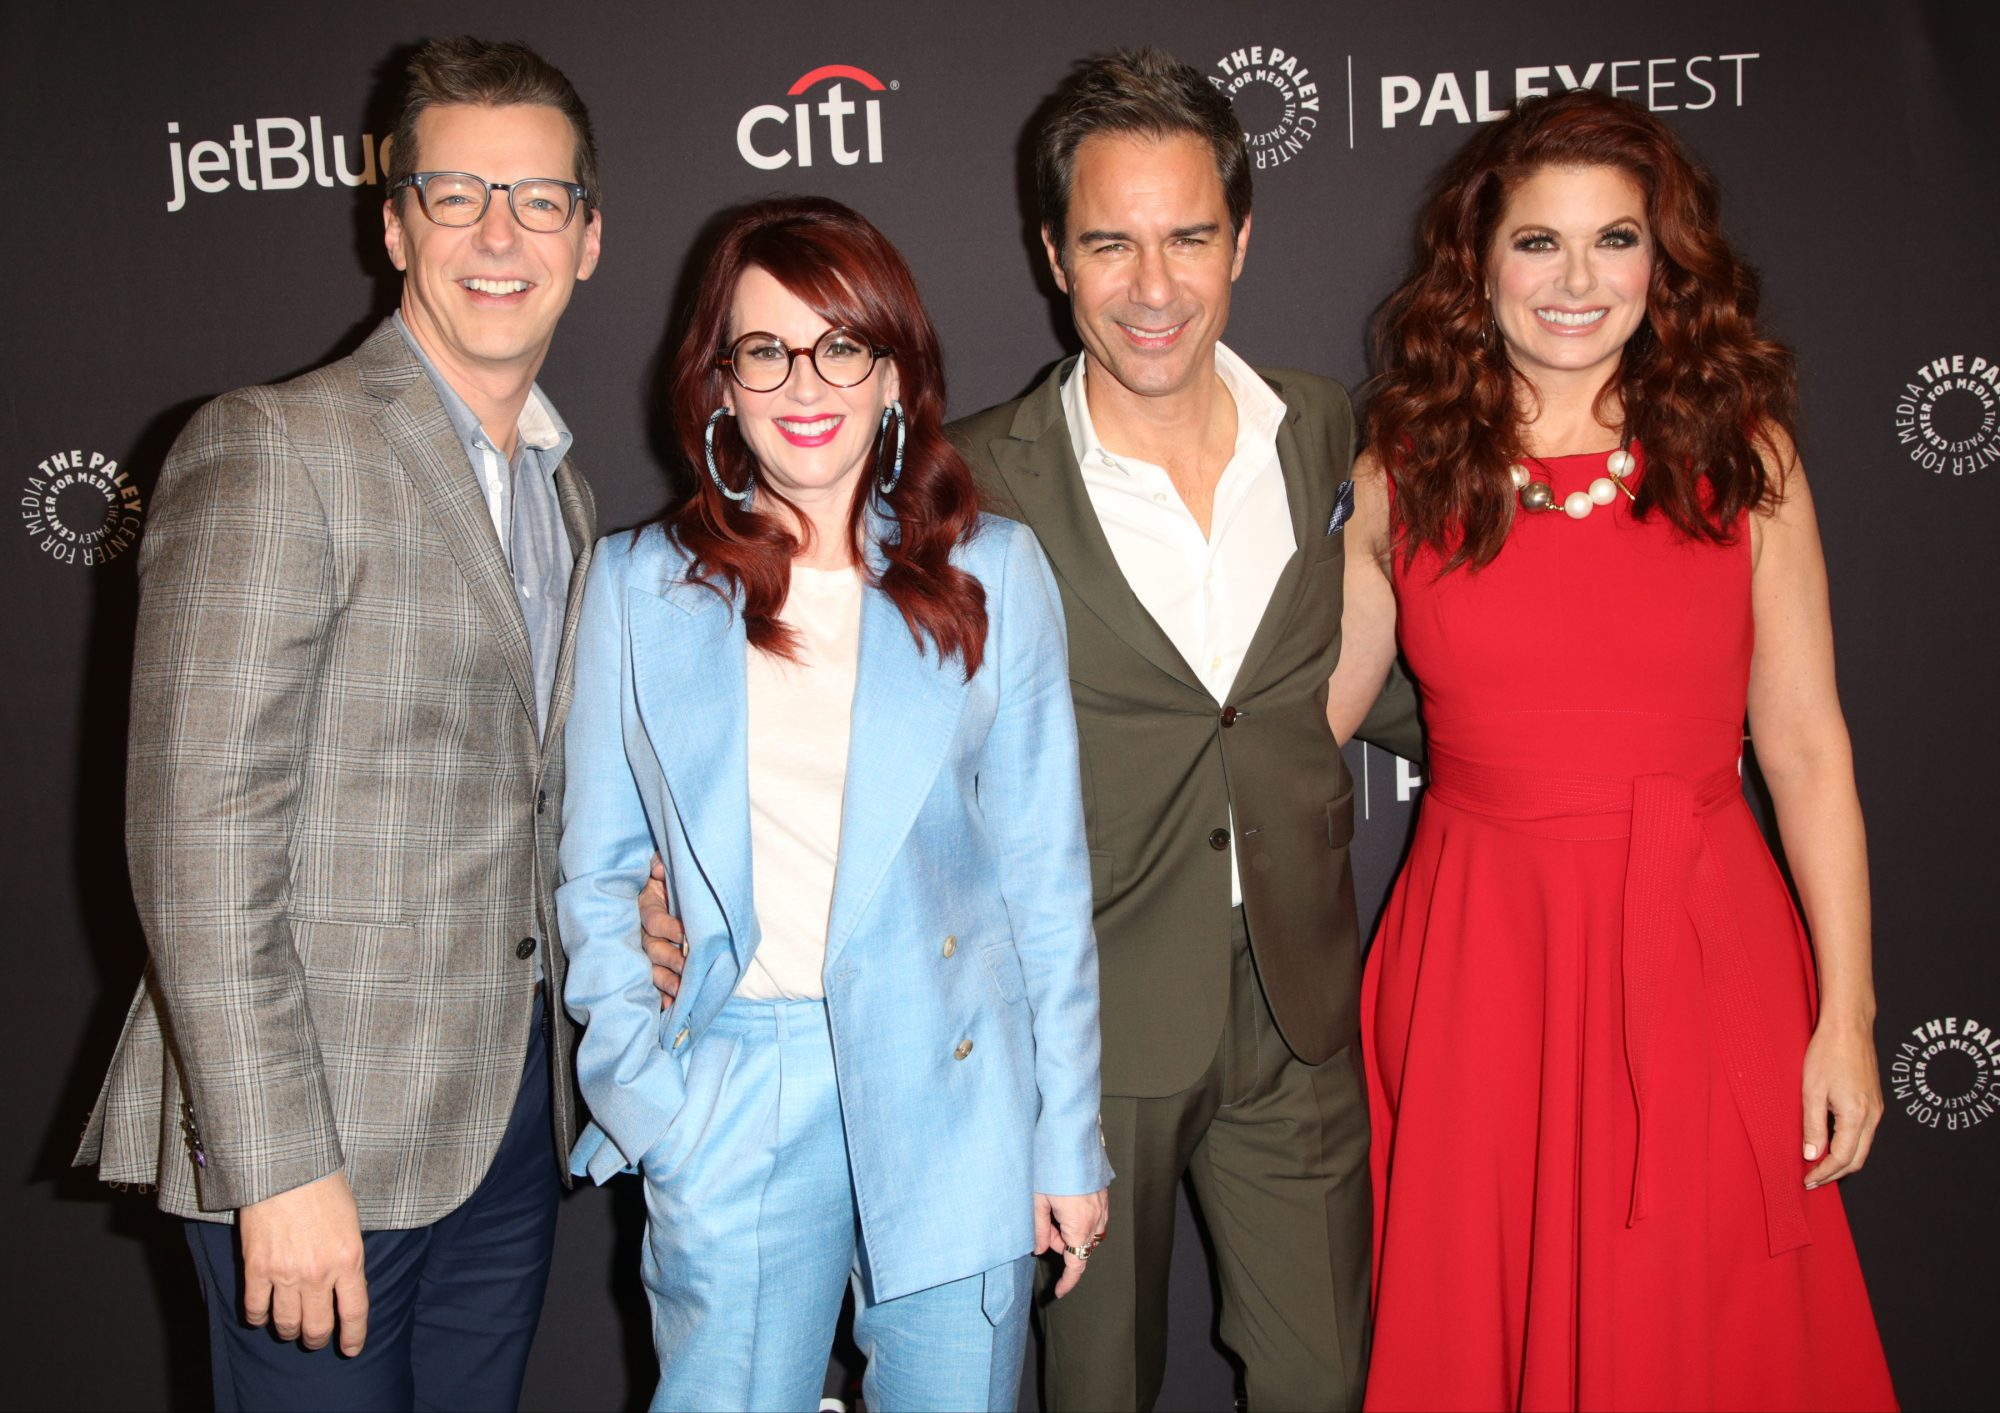 will-grace-cast-paleyfest